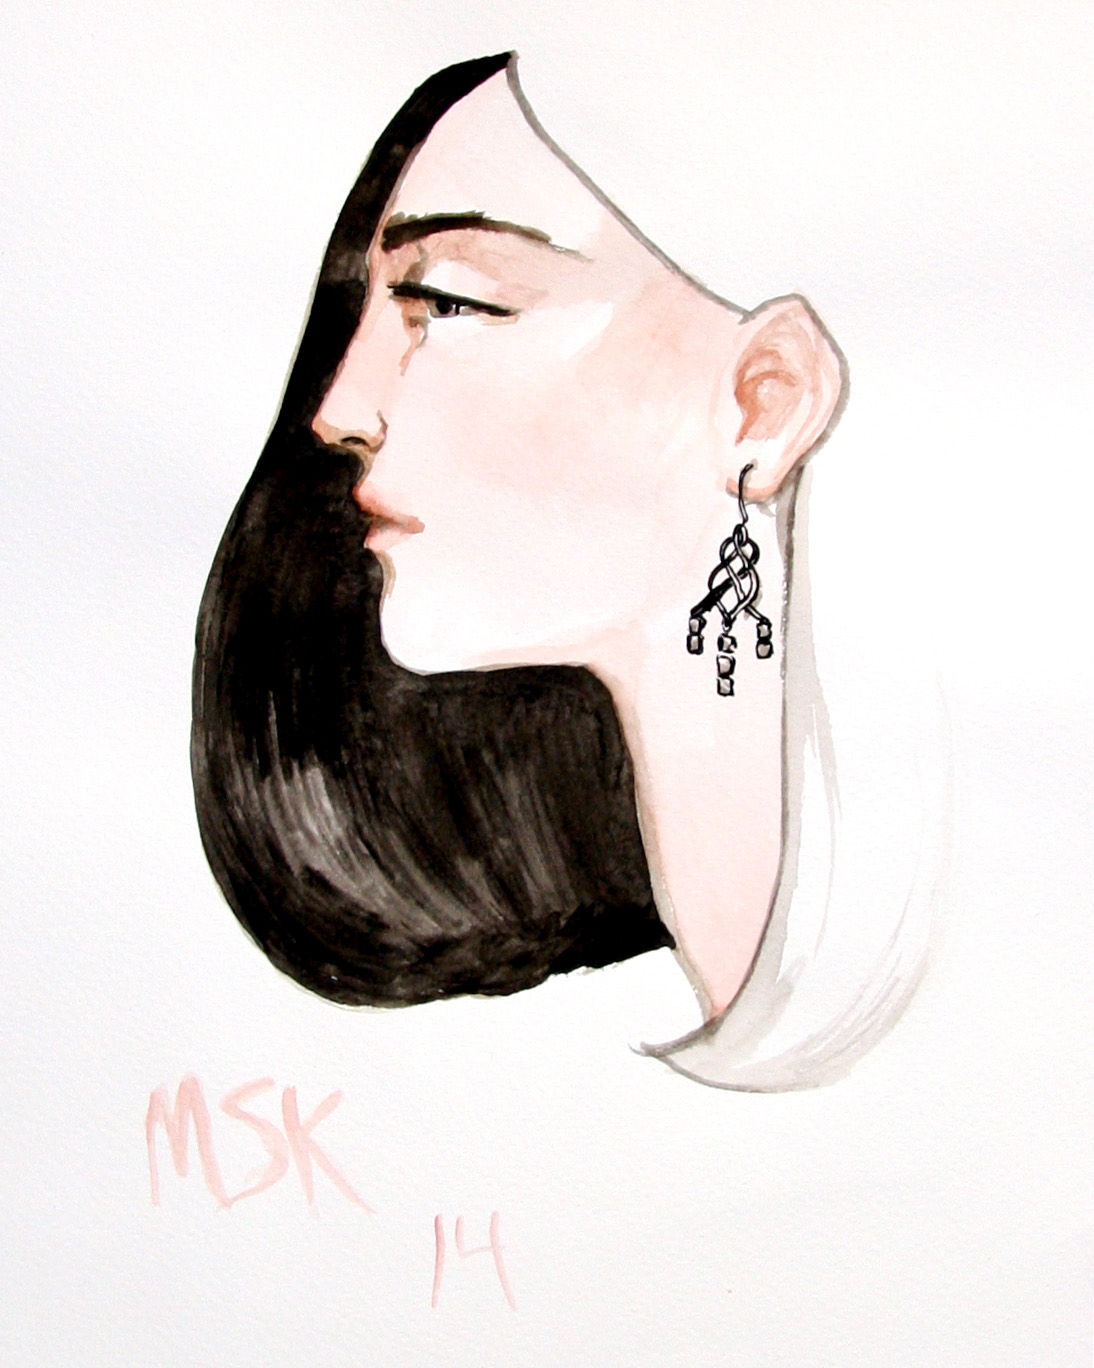 A John Hardy earring on a model of my imagination. These are the drawings I make when I have down time at an event.